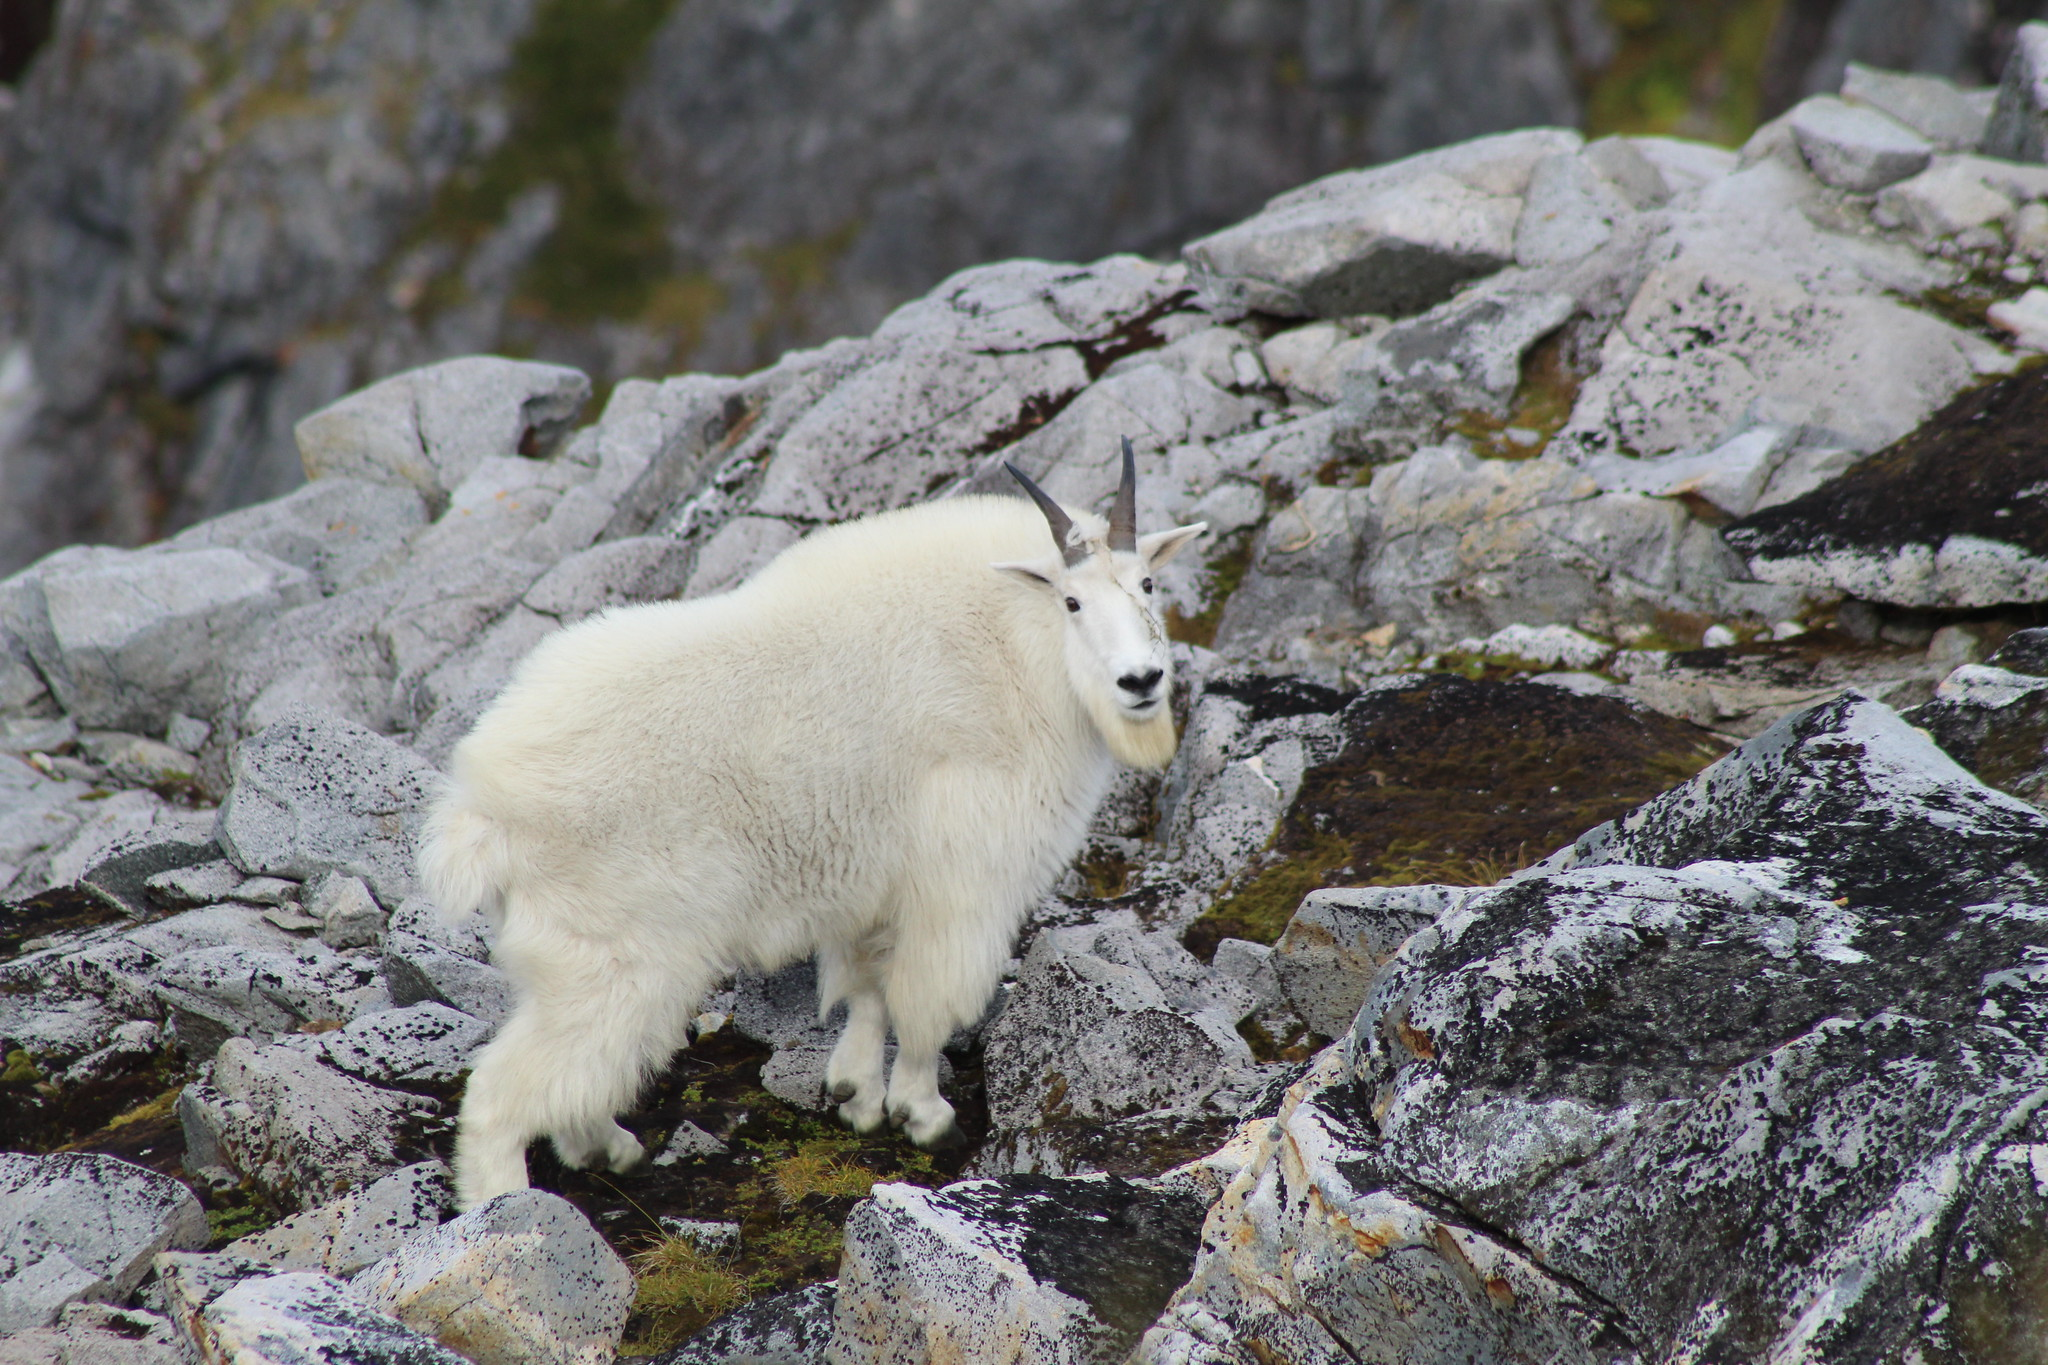 A mountain goat (Oreamnos americanus) near the summit of Northbird Mountain, Revilla Island. Tongass National Forest, Ketchikan Misty Fjords Ranger District, September 2018.